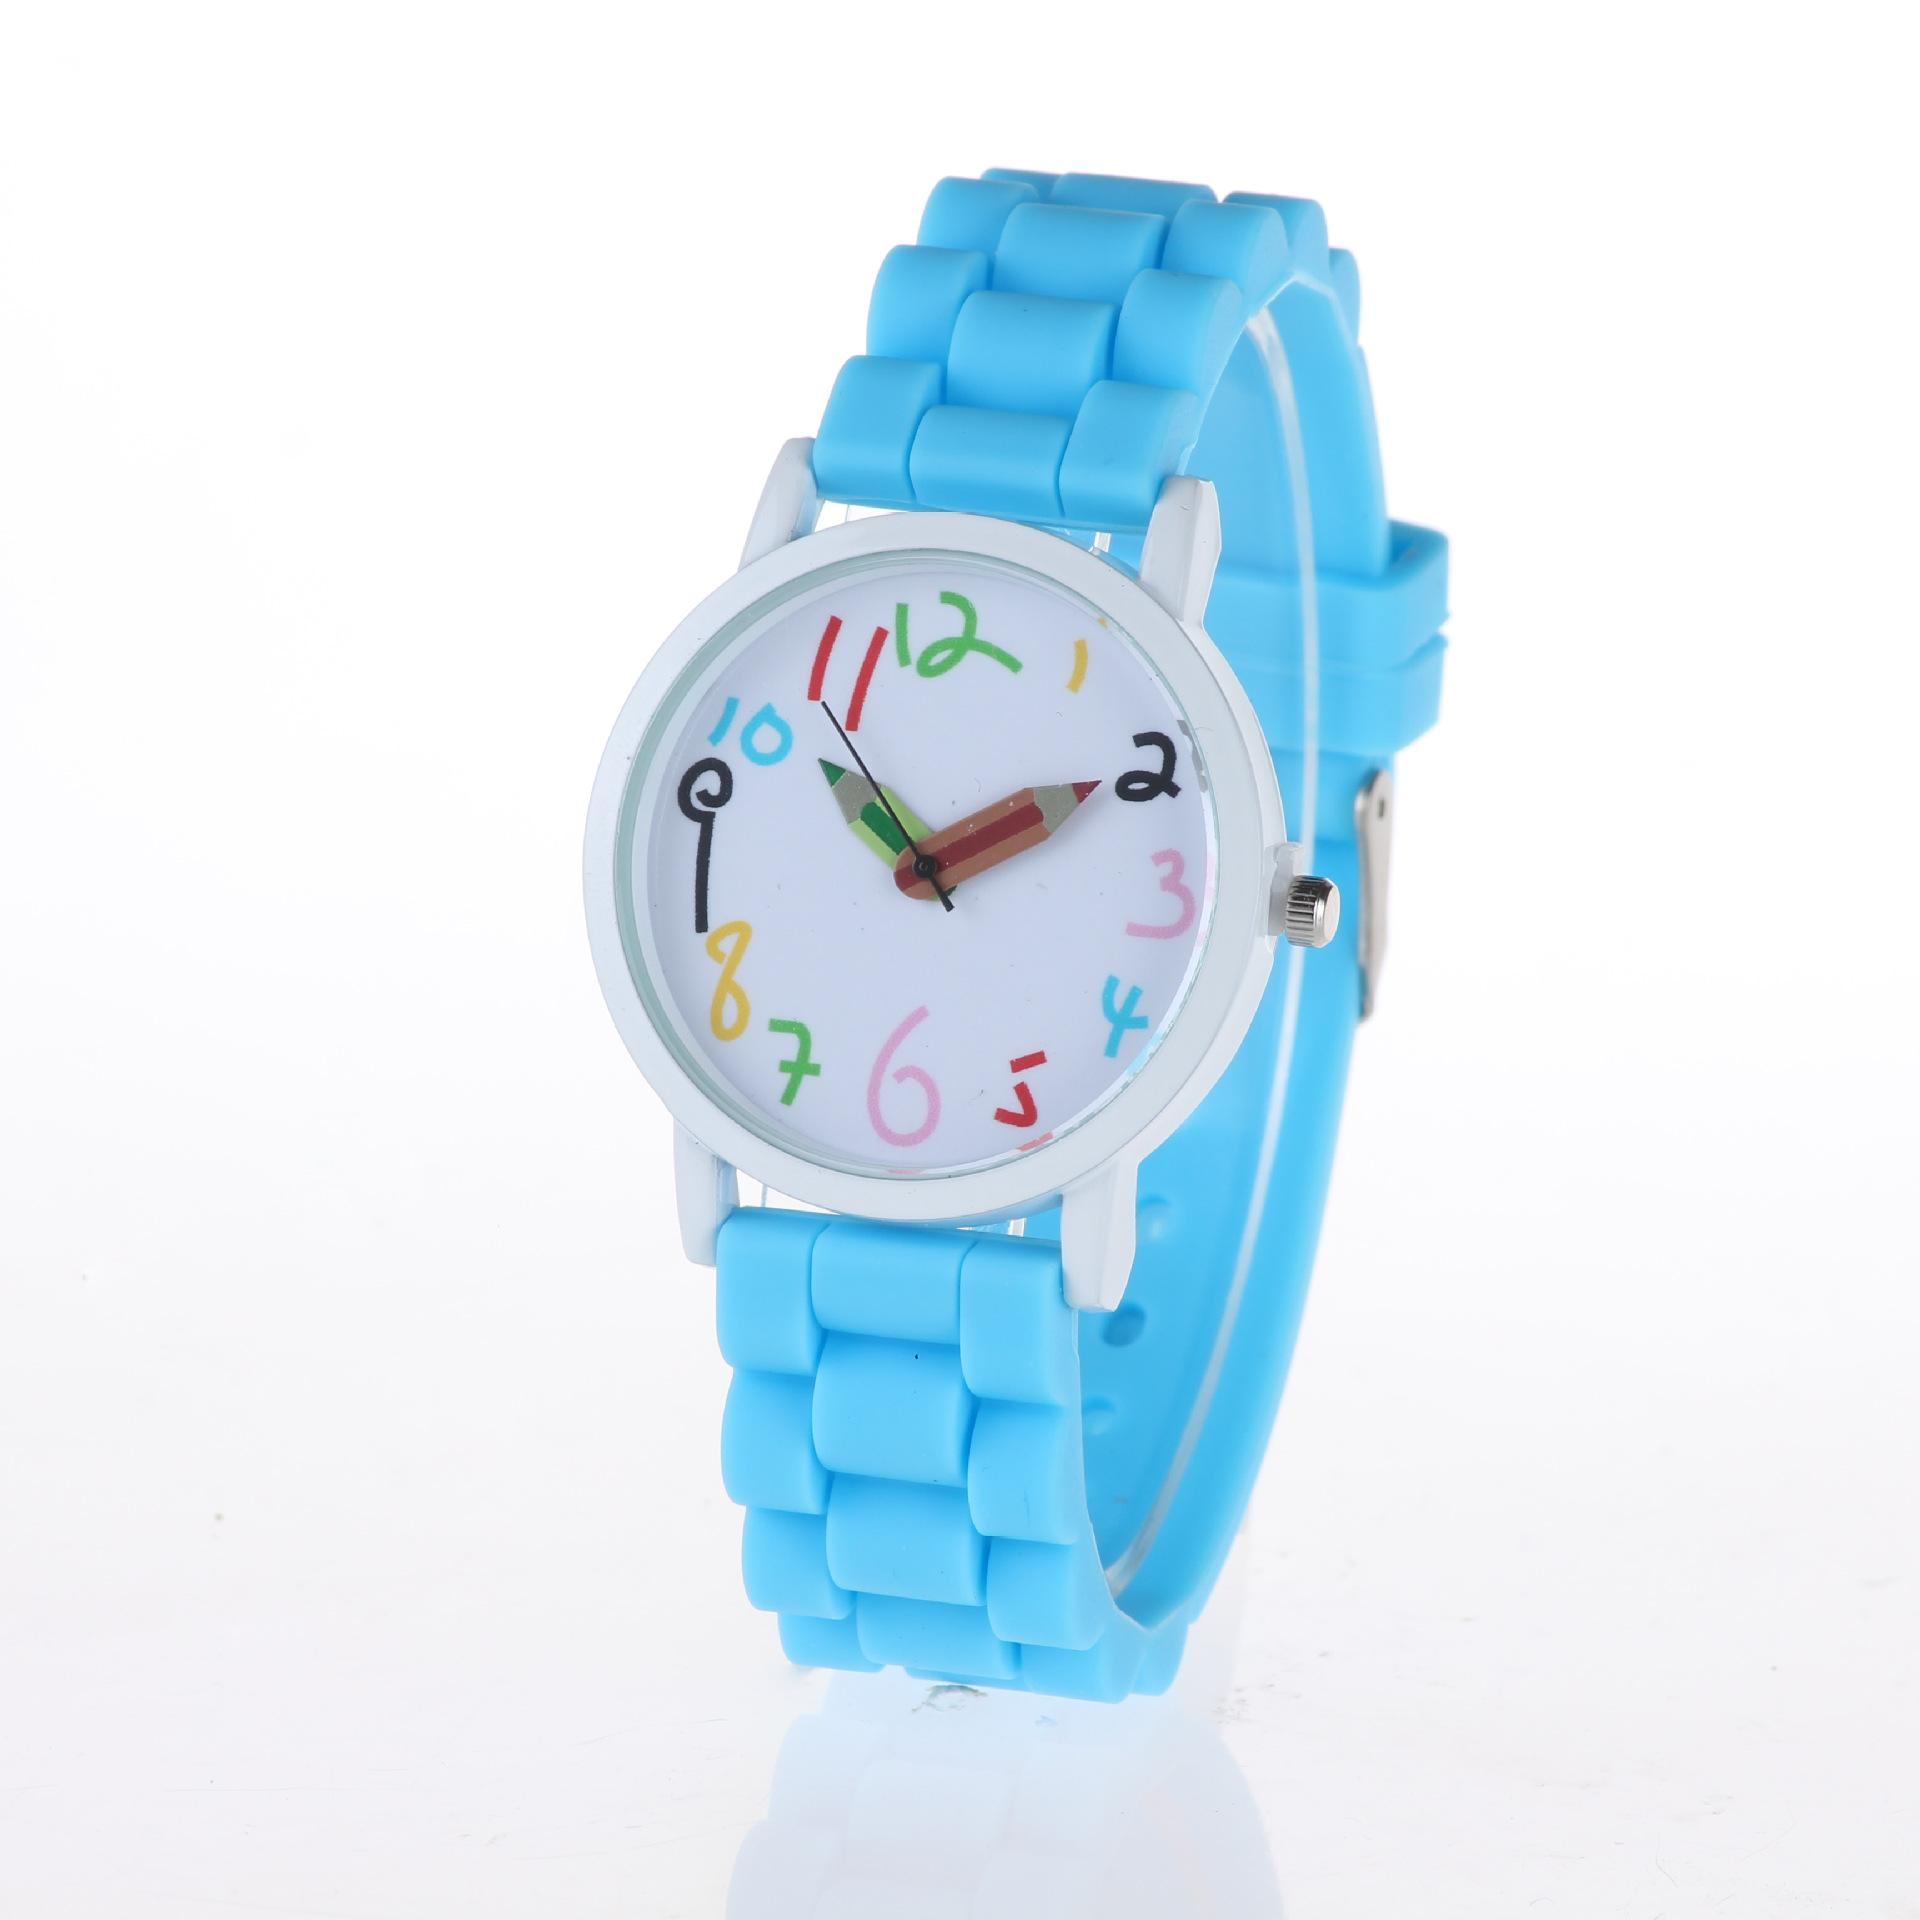 Geneva imitation leather watch Popular Simple fashion big dial silicone watch students font creative children watch candy color pencil point